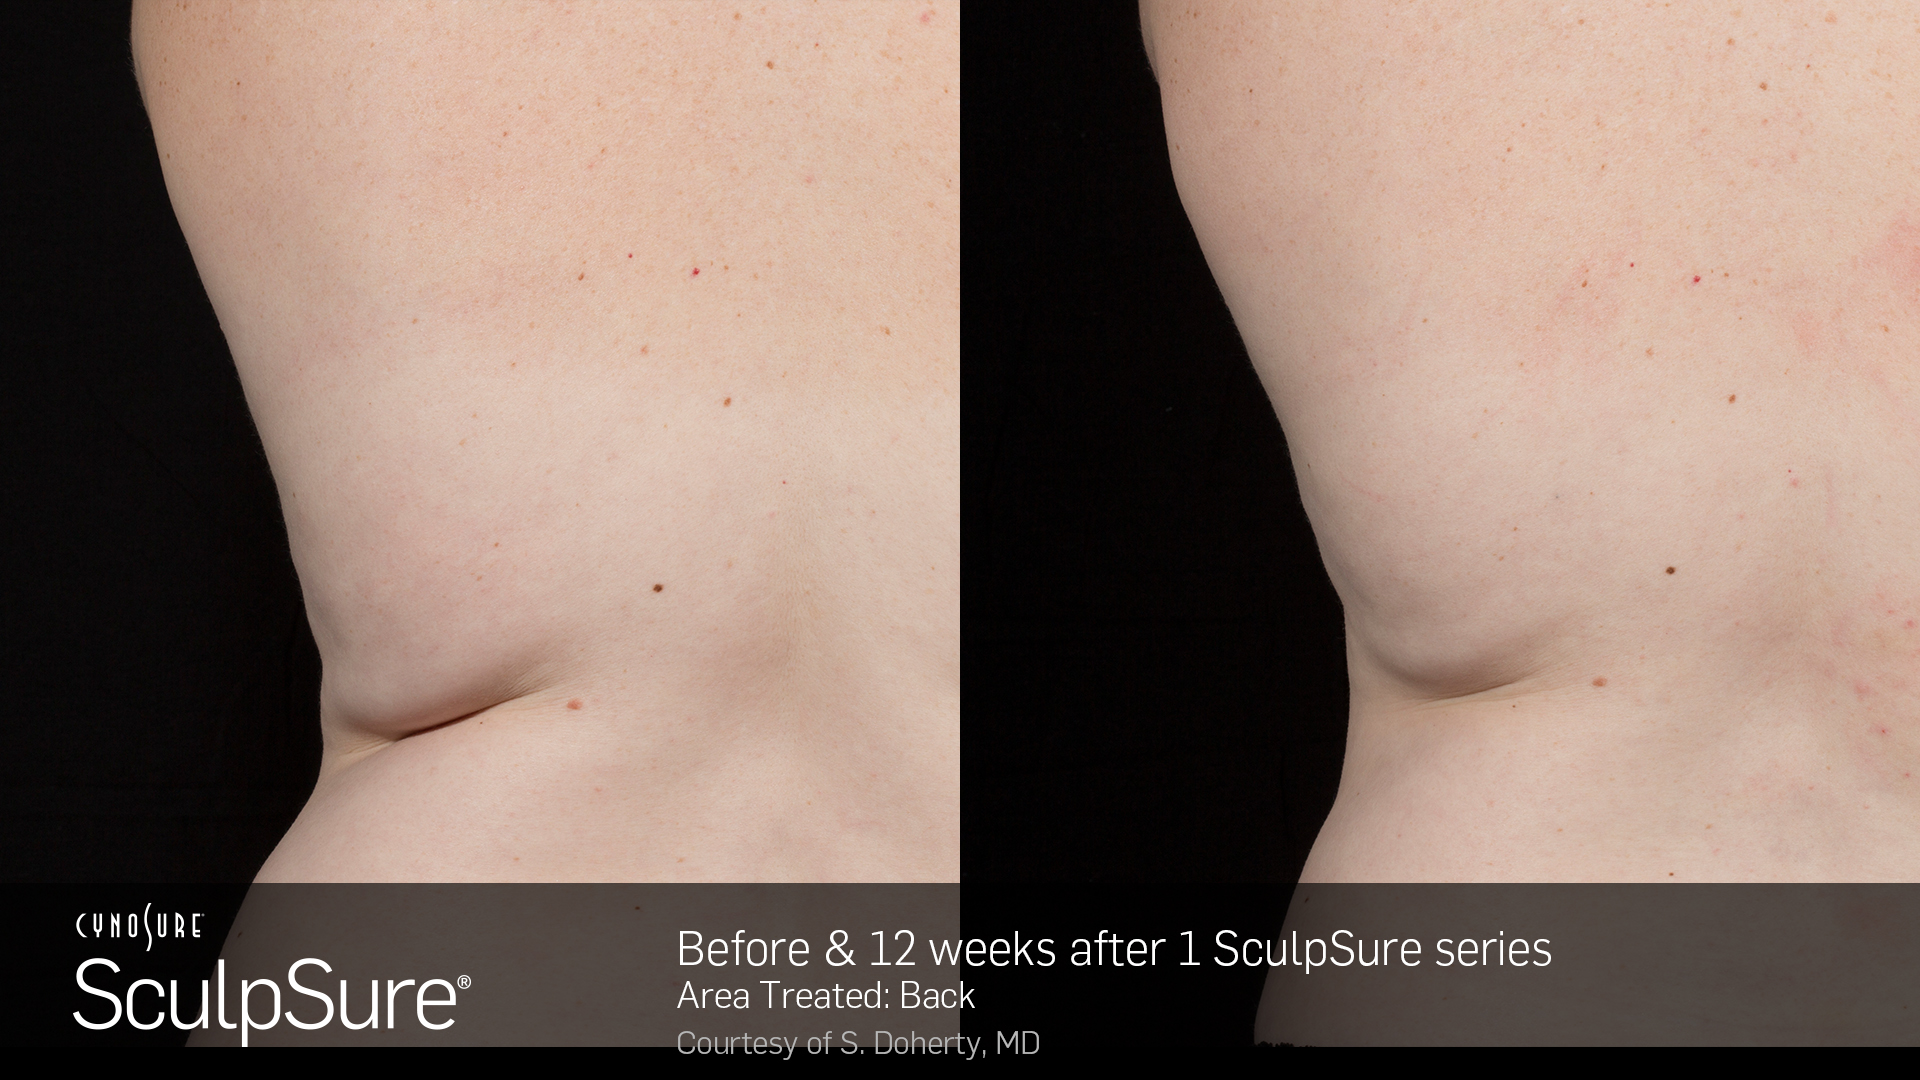 BA_SculpSure_S.Doherty_Back_1tx_12weeks_13_JR